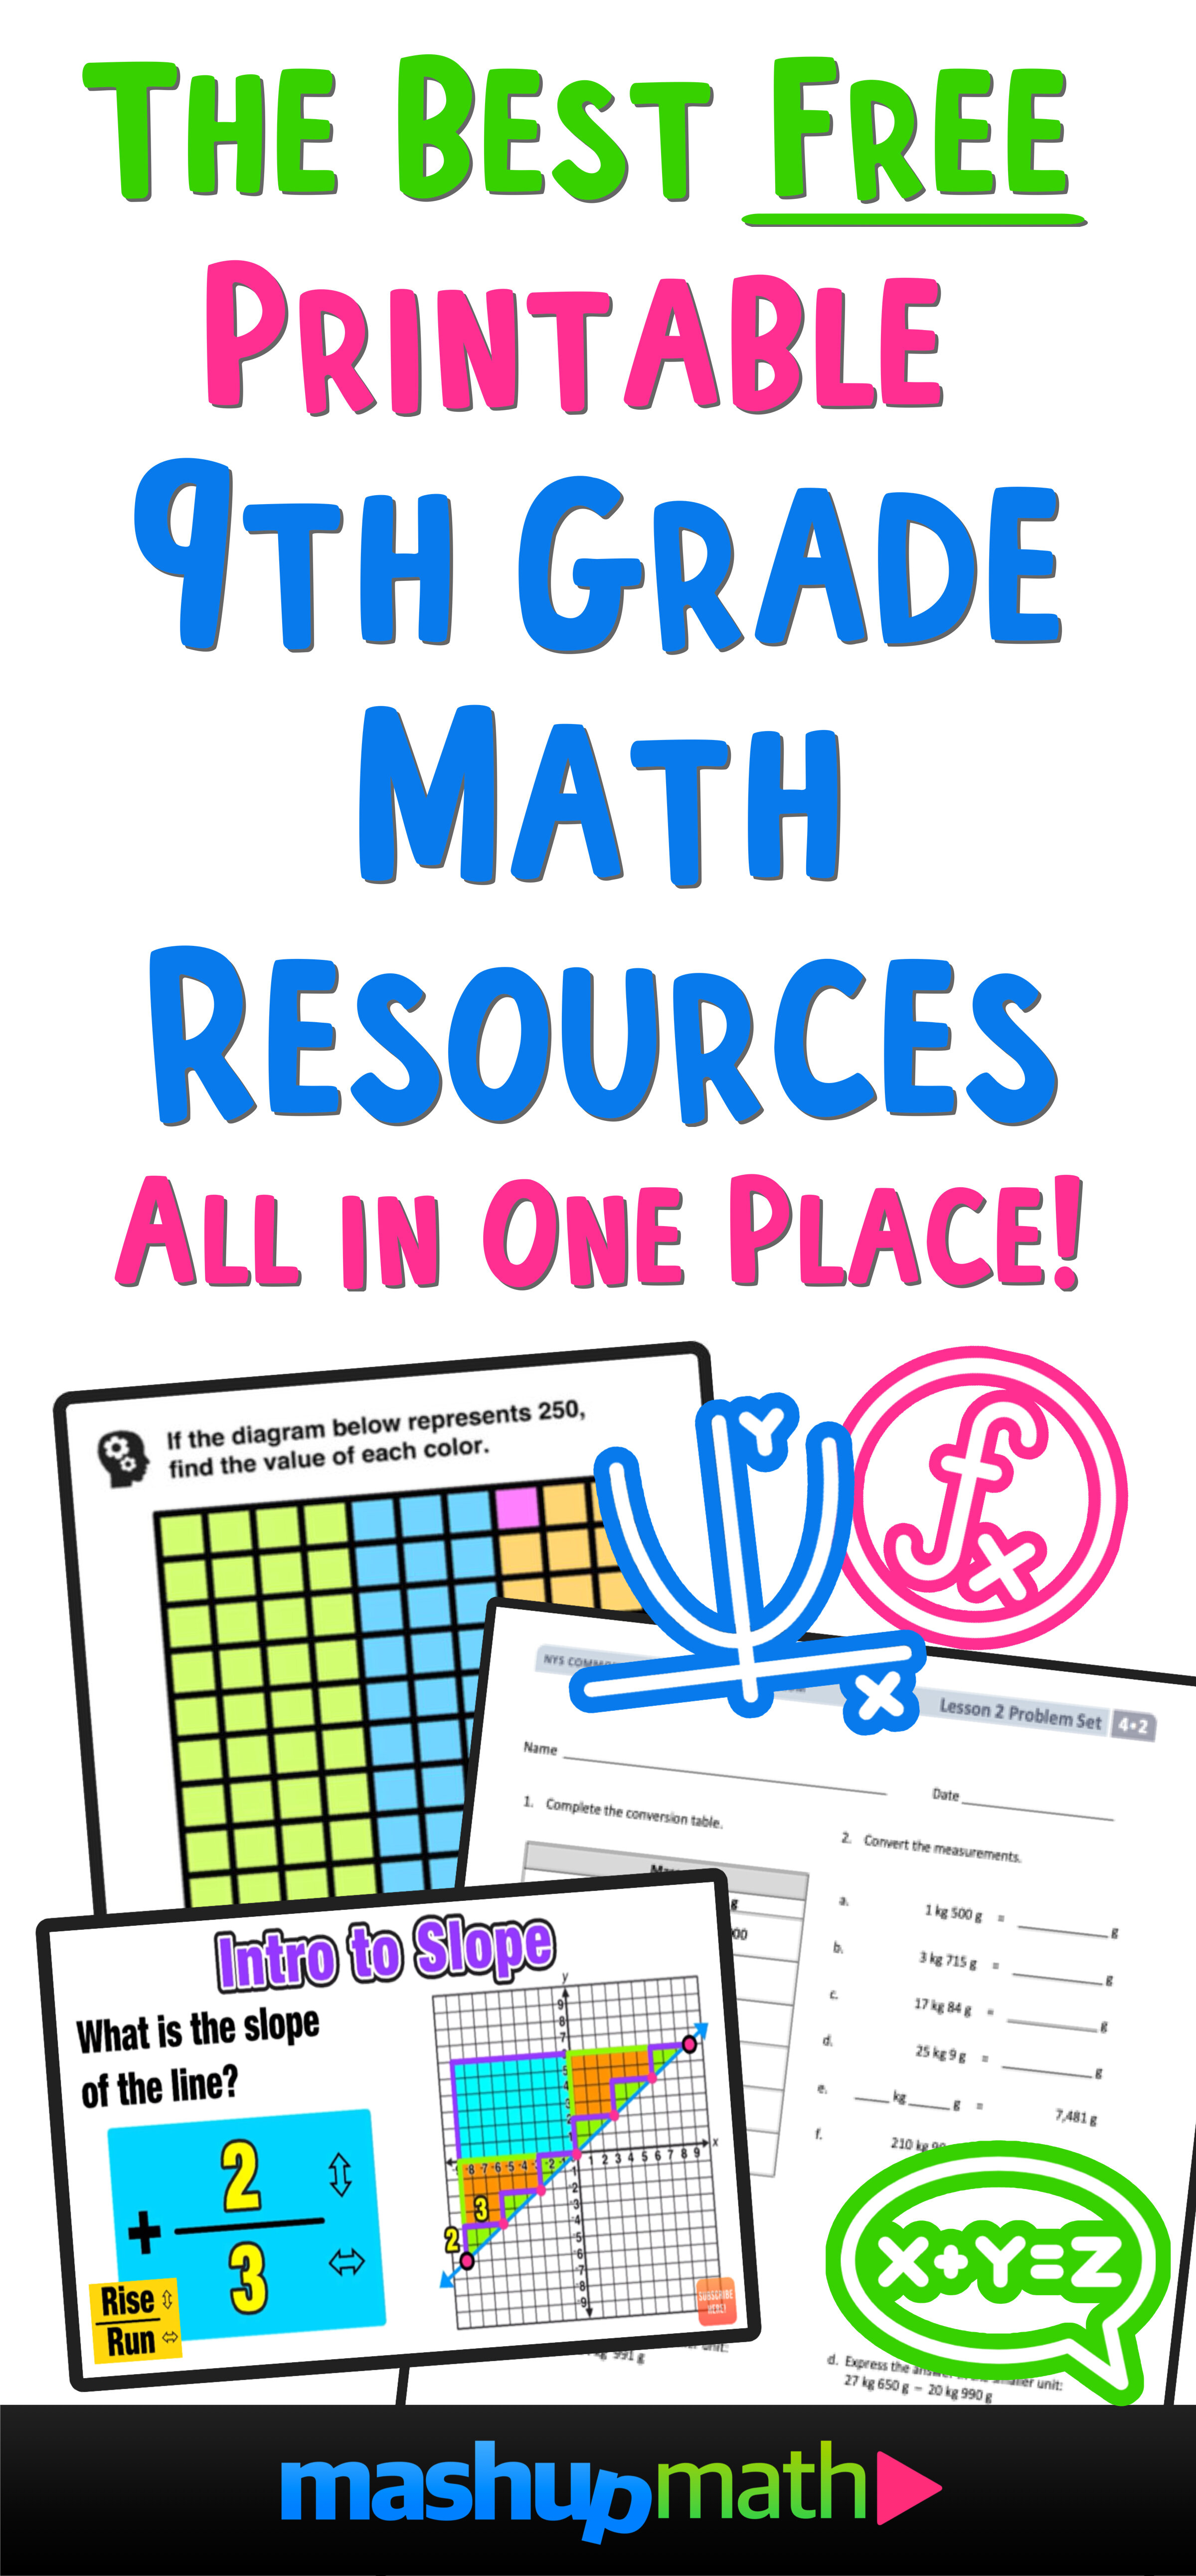 The Best Free 9th Grade Math Resources Complete List Mashup Math [ 2153 x 1000 Pixel ]